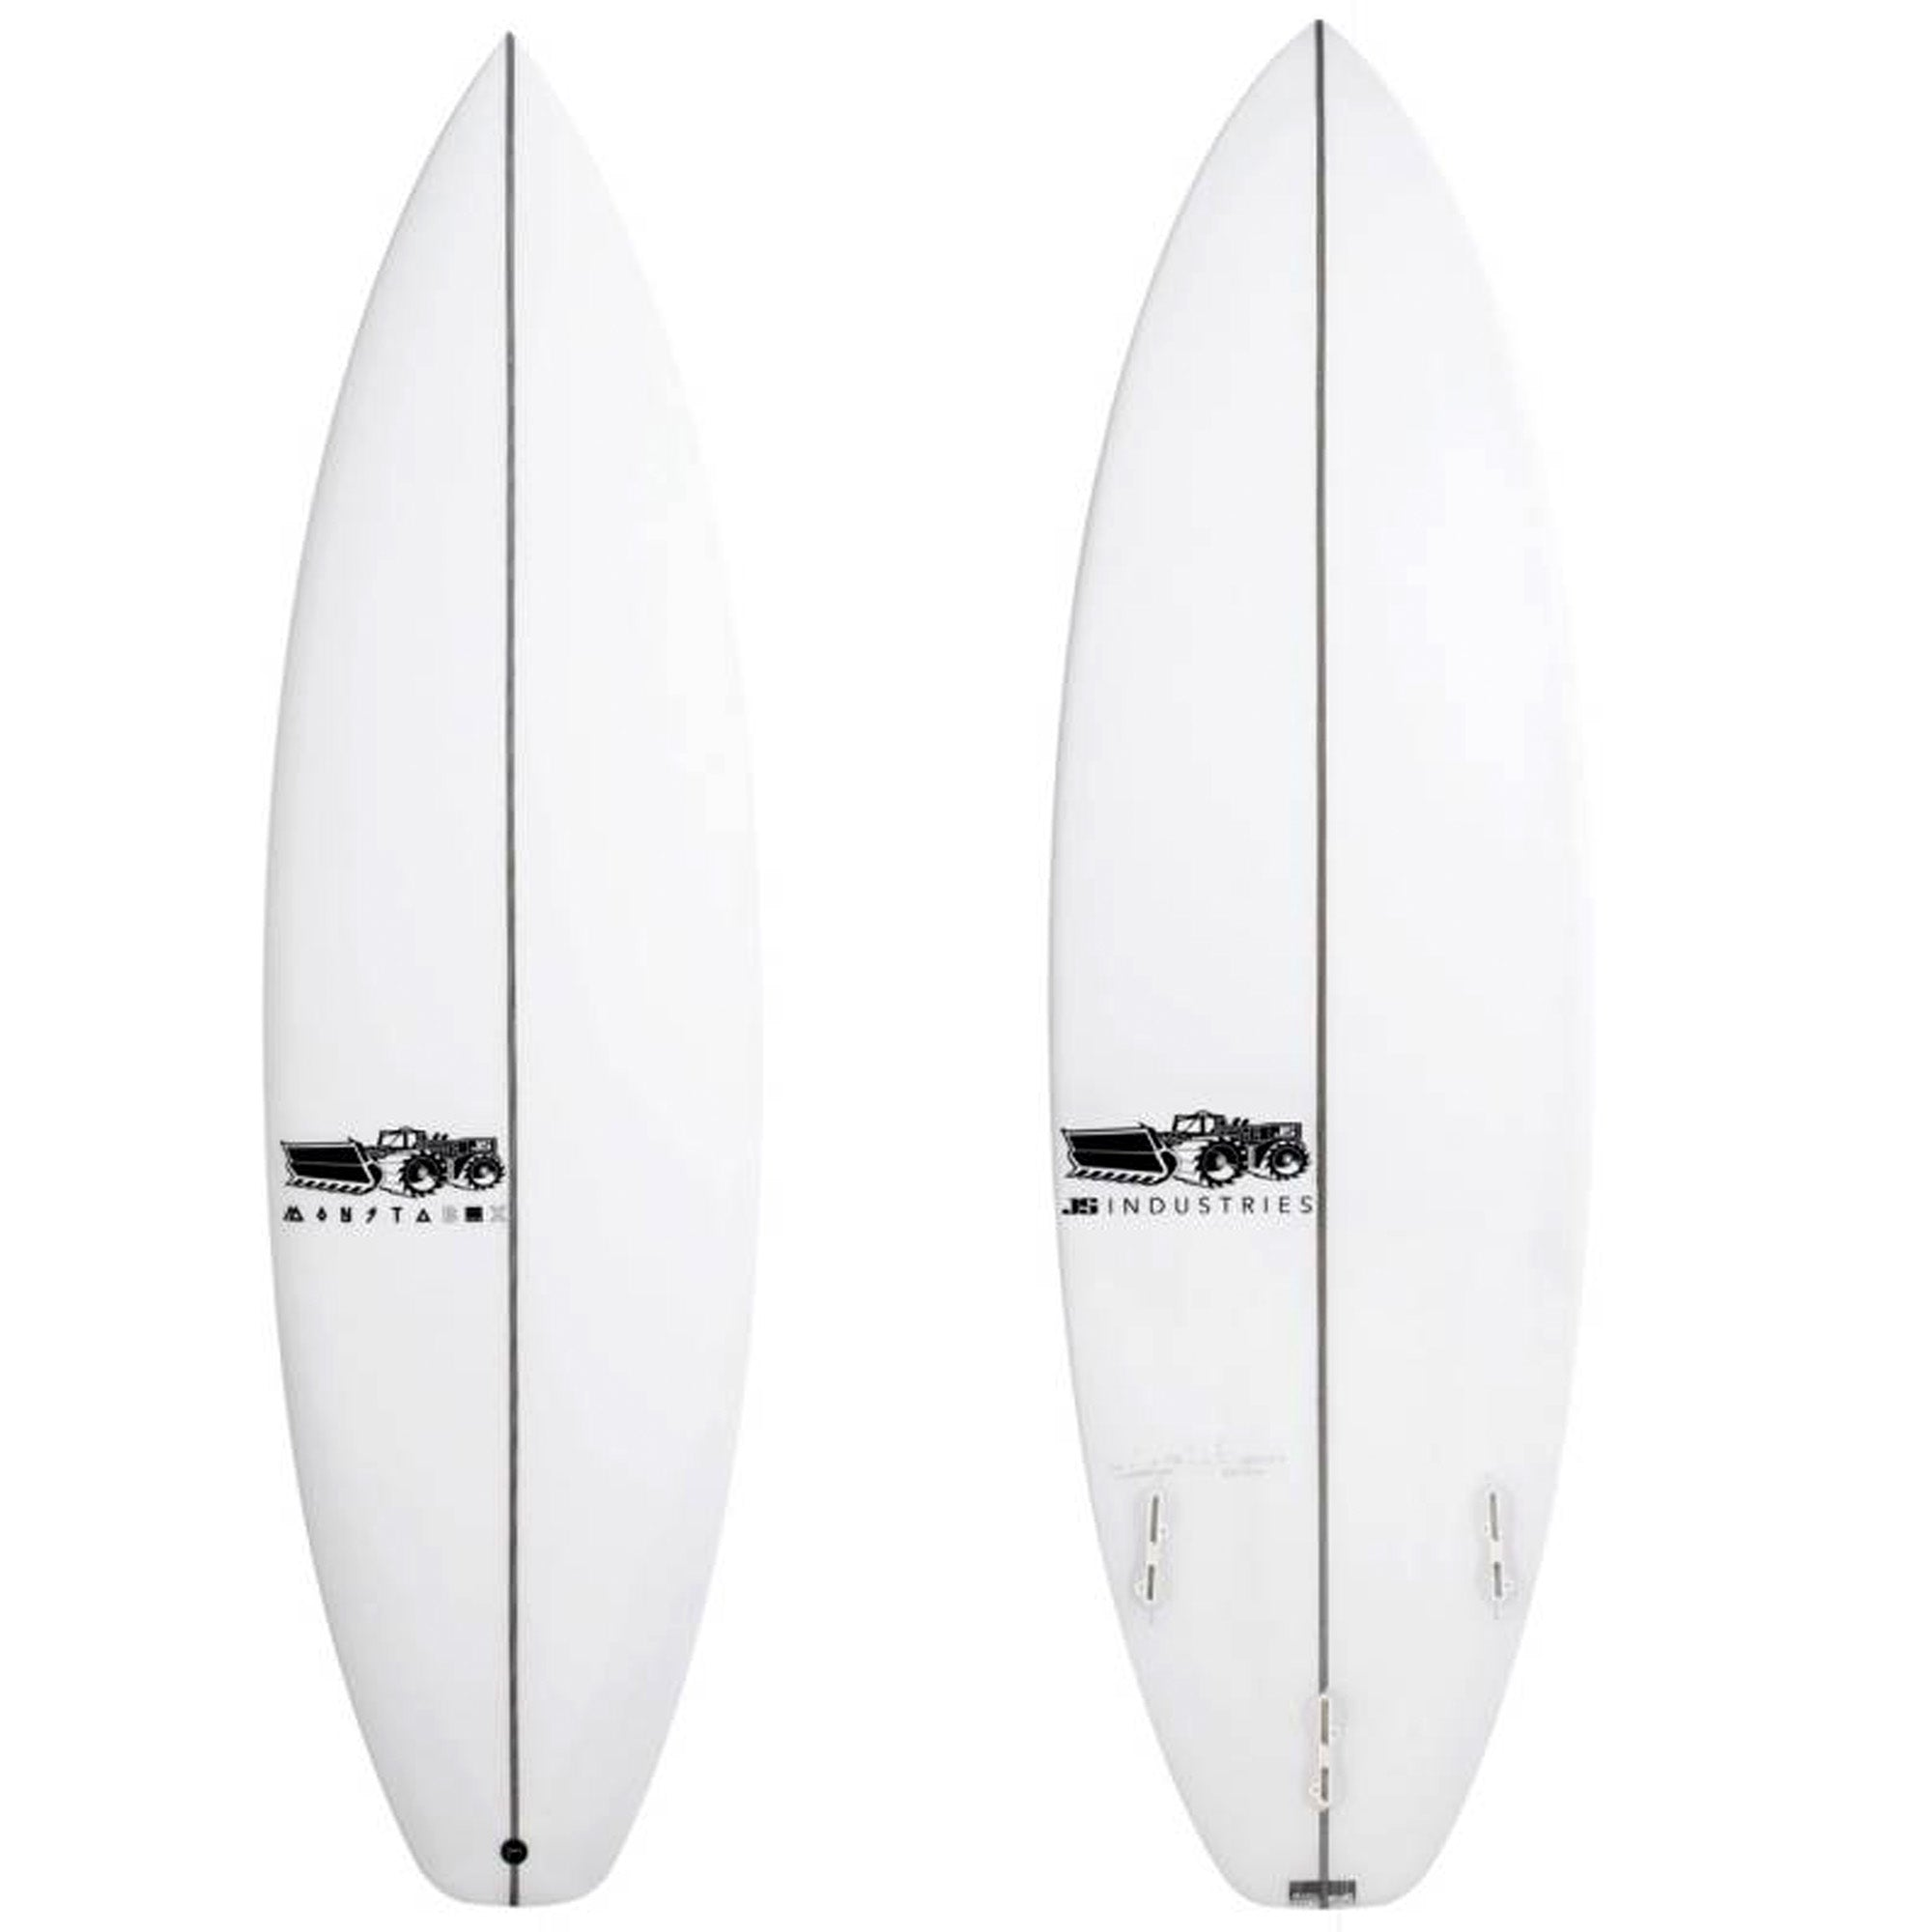 JS Monsta Box 2020 Squash Tail Surfboard - FCS II